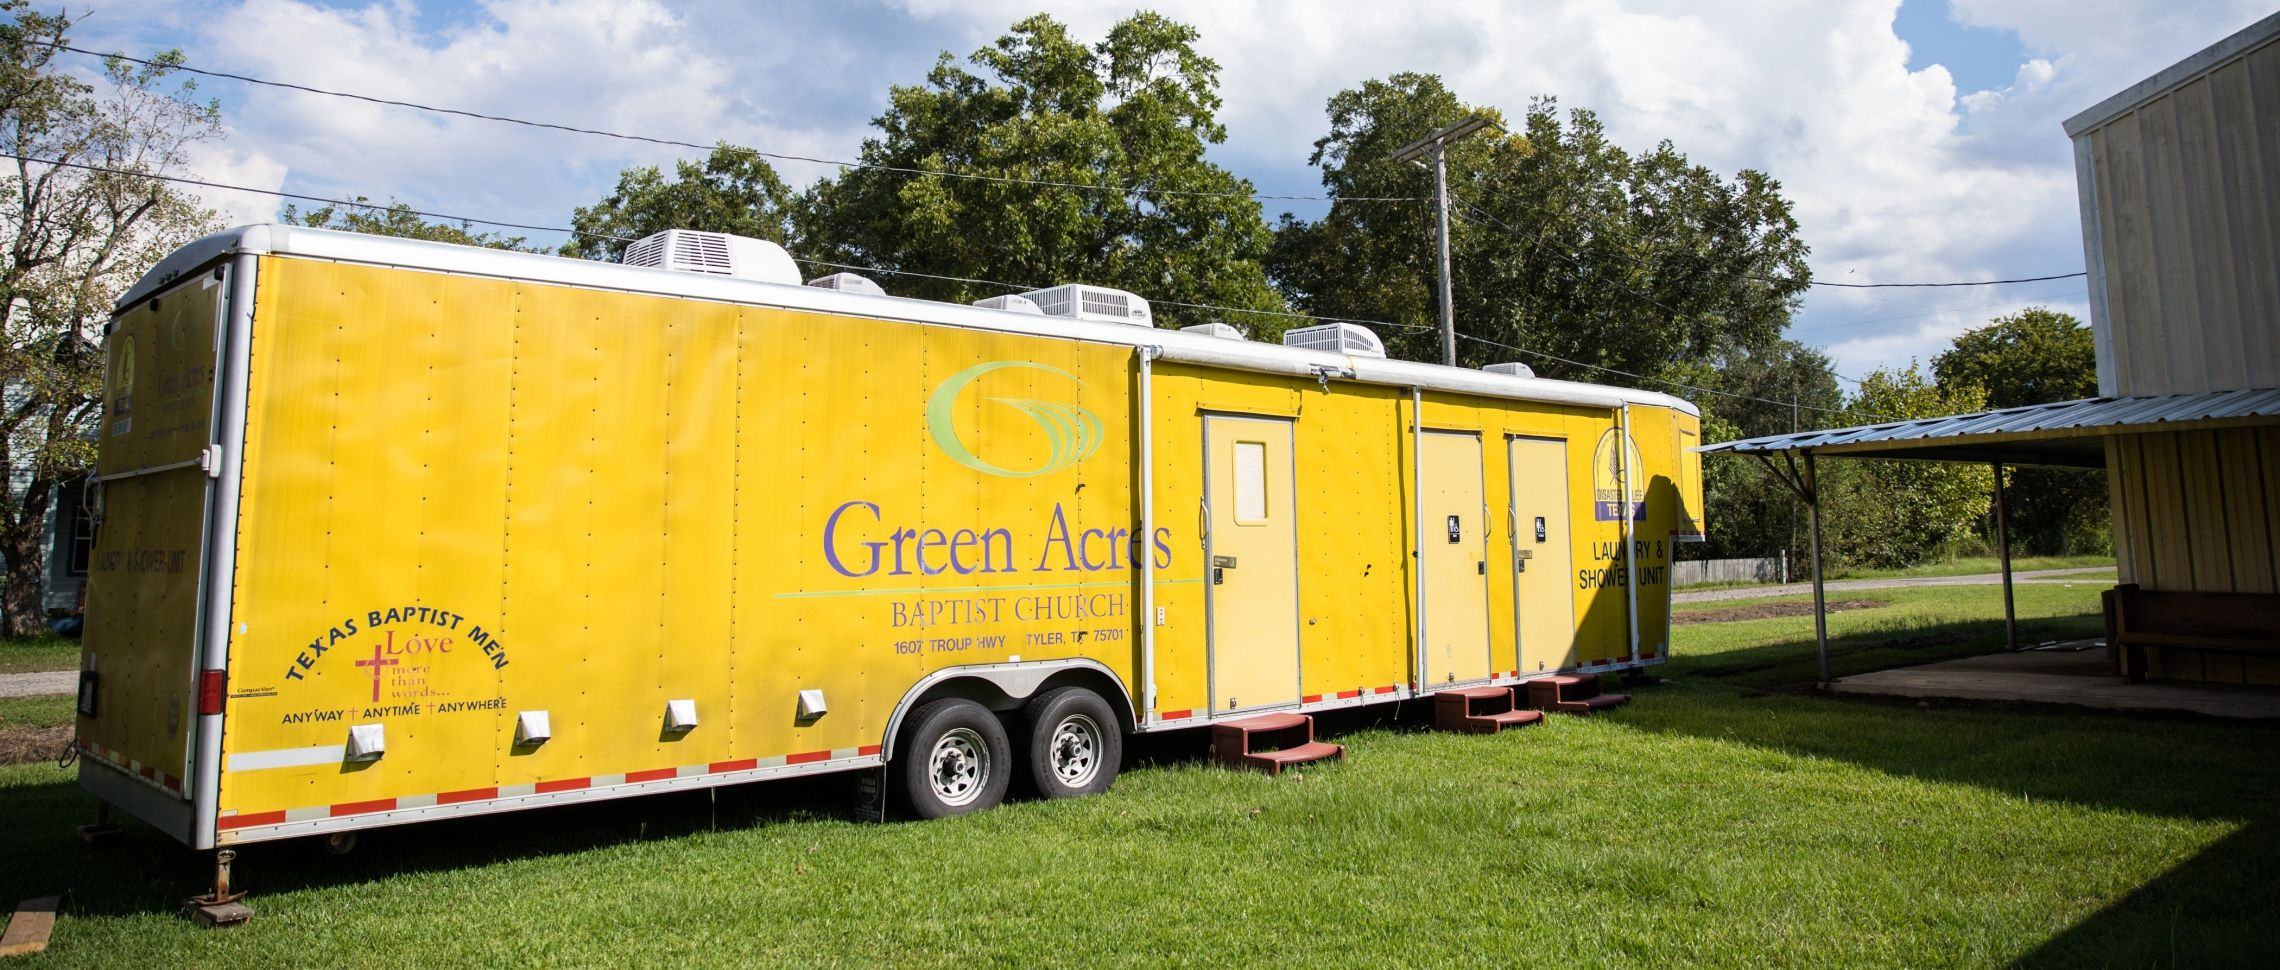 Texas Baptists News Your Trailer May Not Have Been Originally Wired The Way Depicted And Green Acres Baptist Church Provides Encouragement Resources To Fbc Hull After Hurricane Harvey